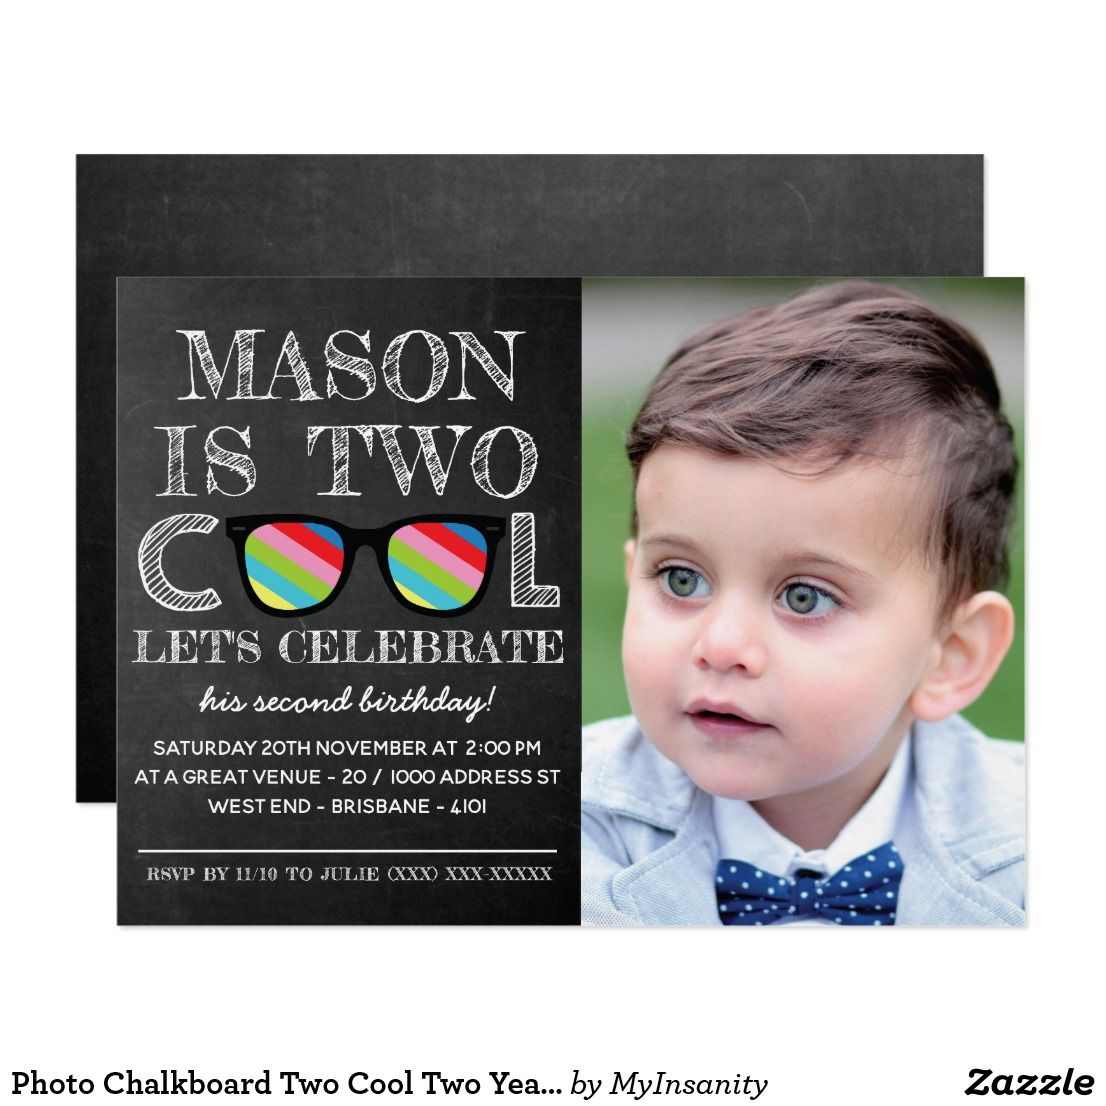 Photo Chalkboard Two Cool Years Old Birthday Invitation Your Toddler Is Turning For School His Celebration Will Have